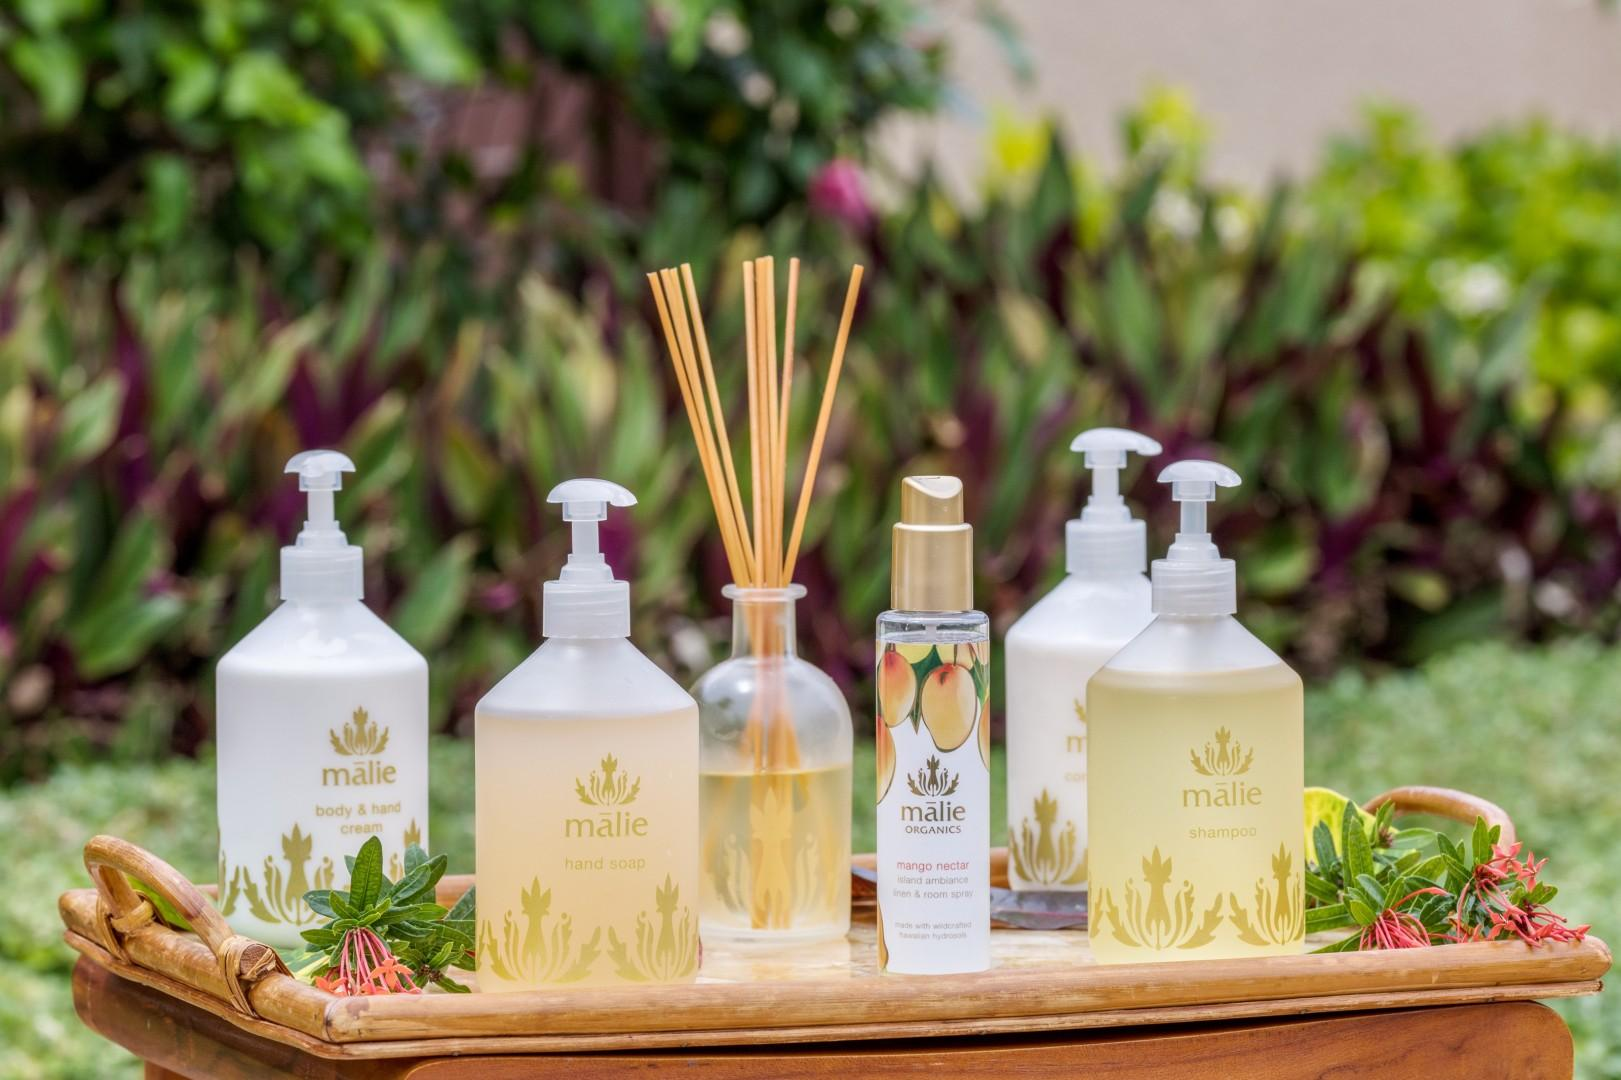 Upscale Malie Organics bath products add to the overall opulence.